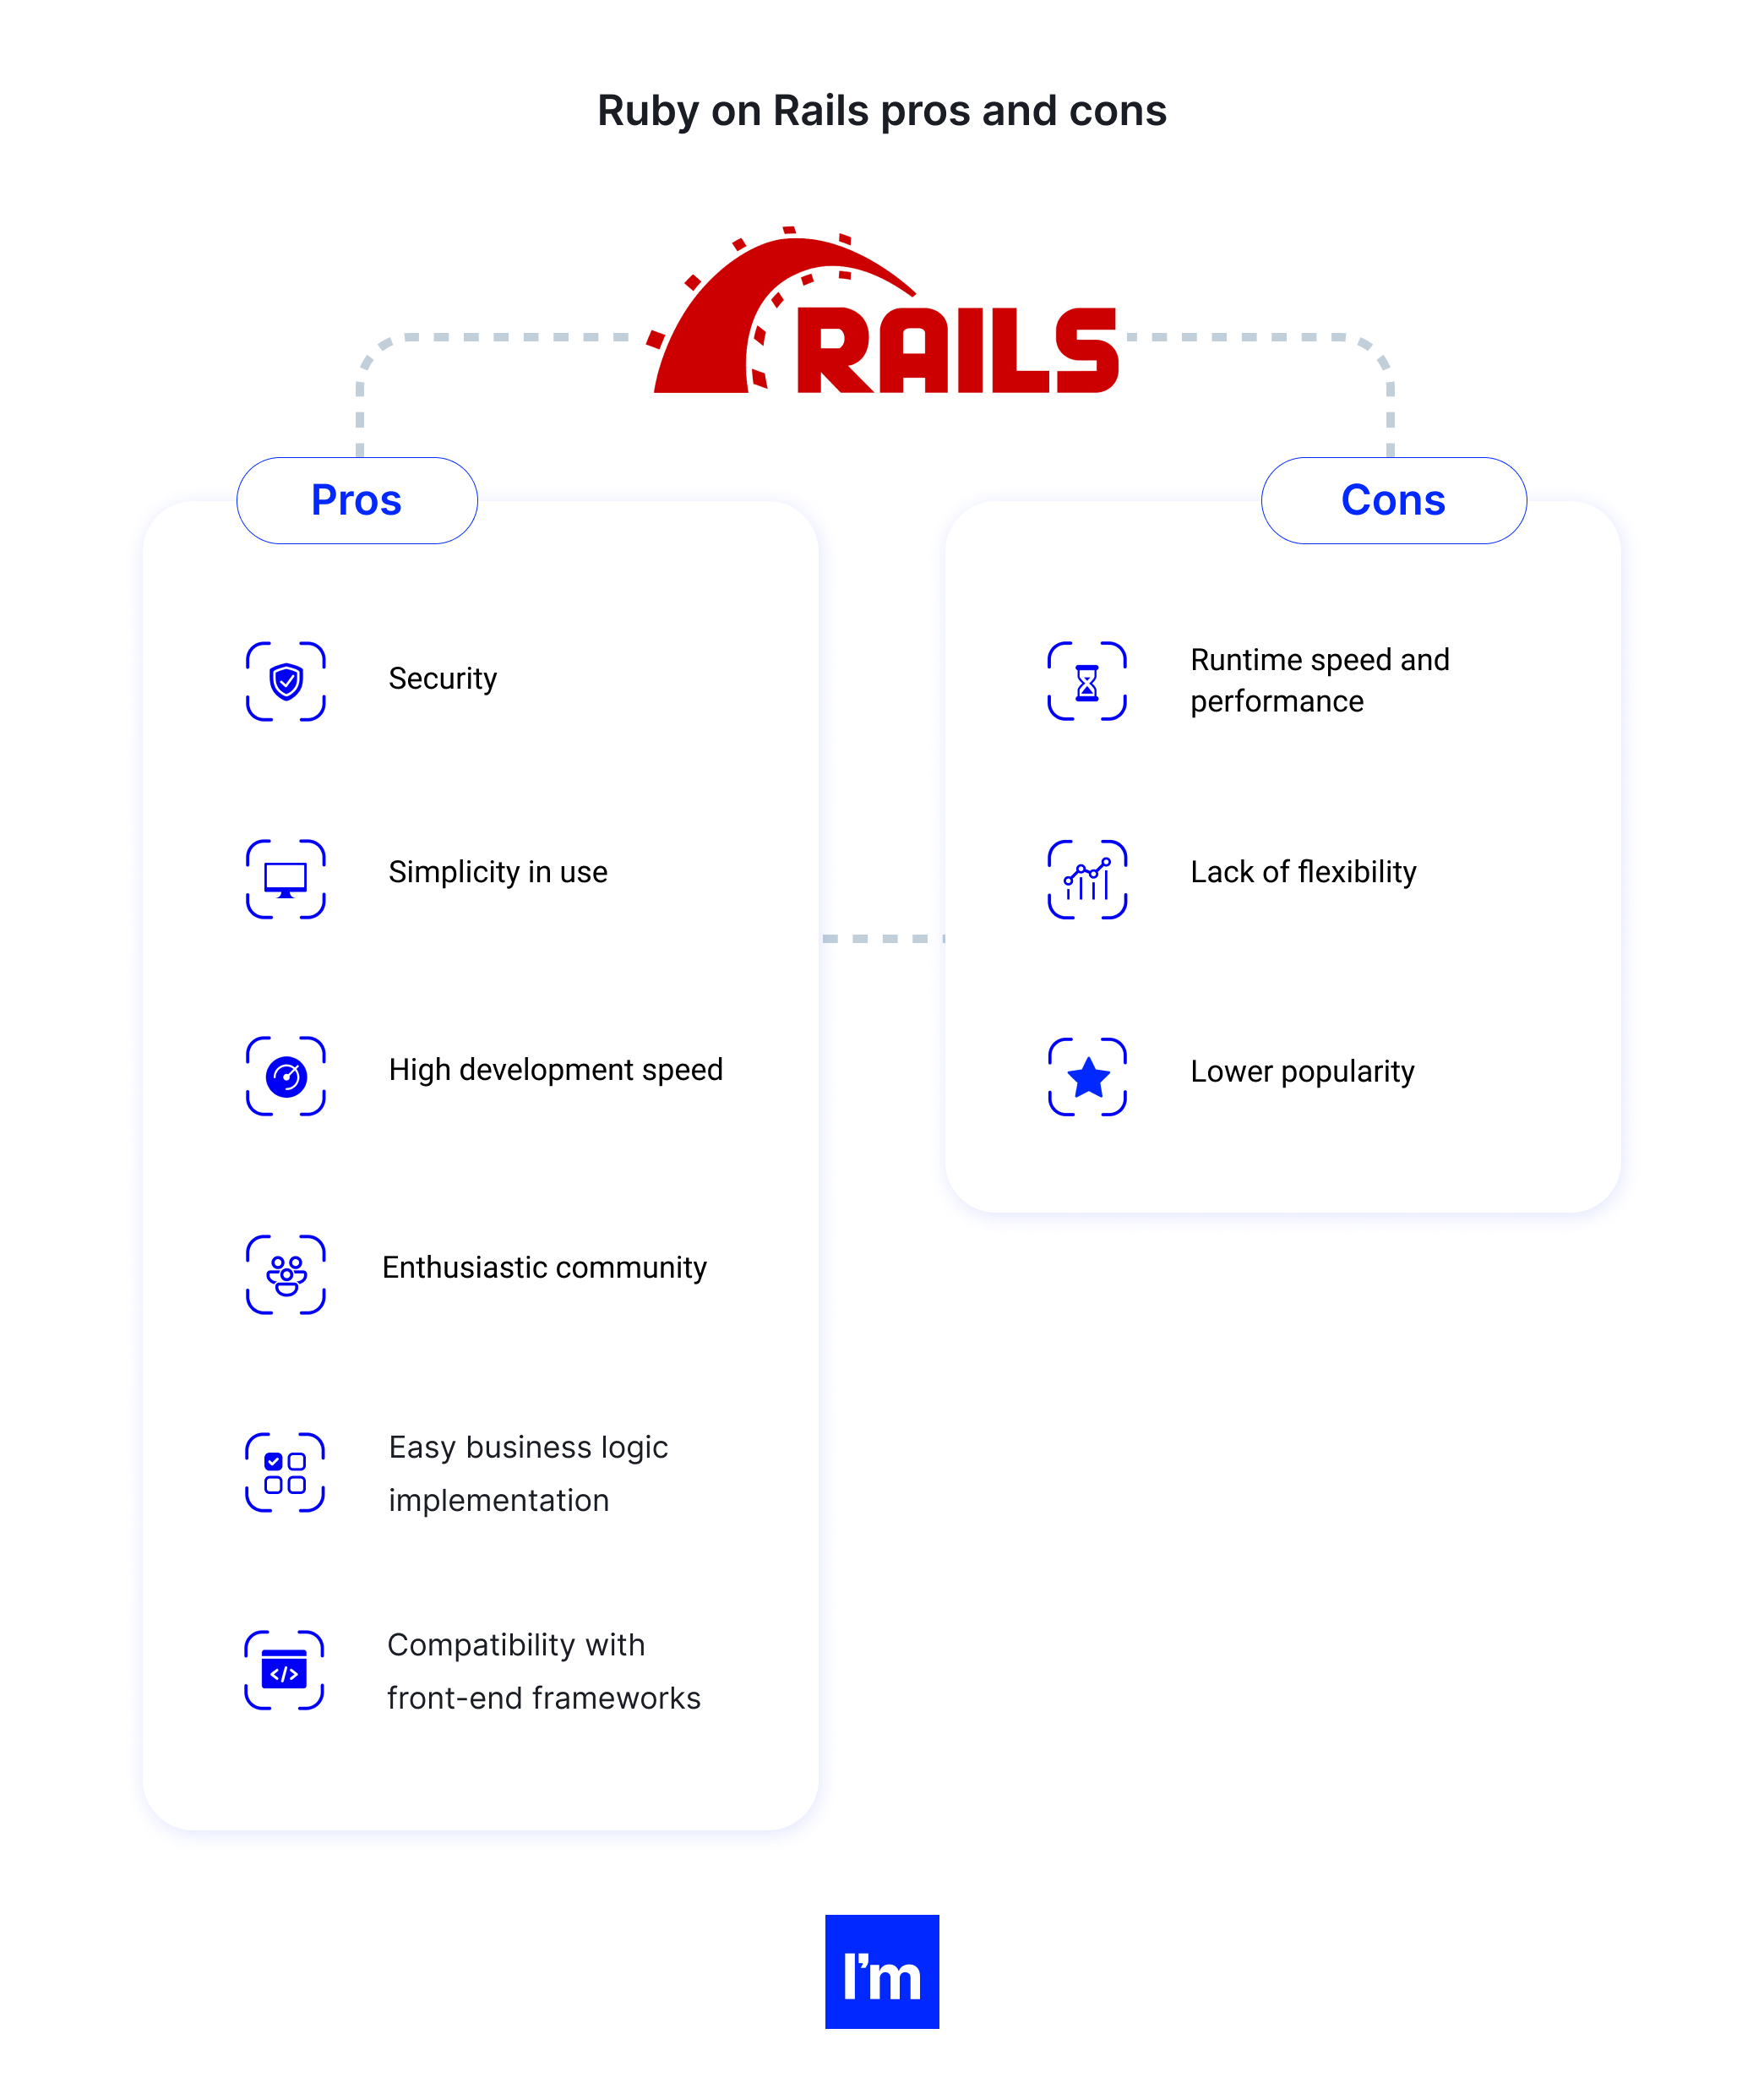 ruby on rails pros and cons